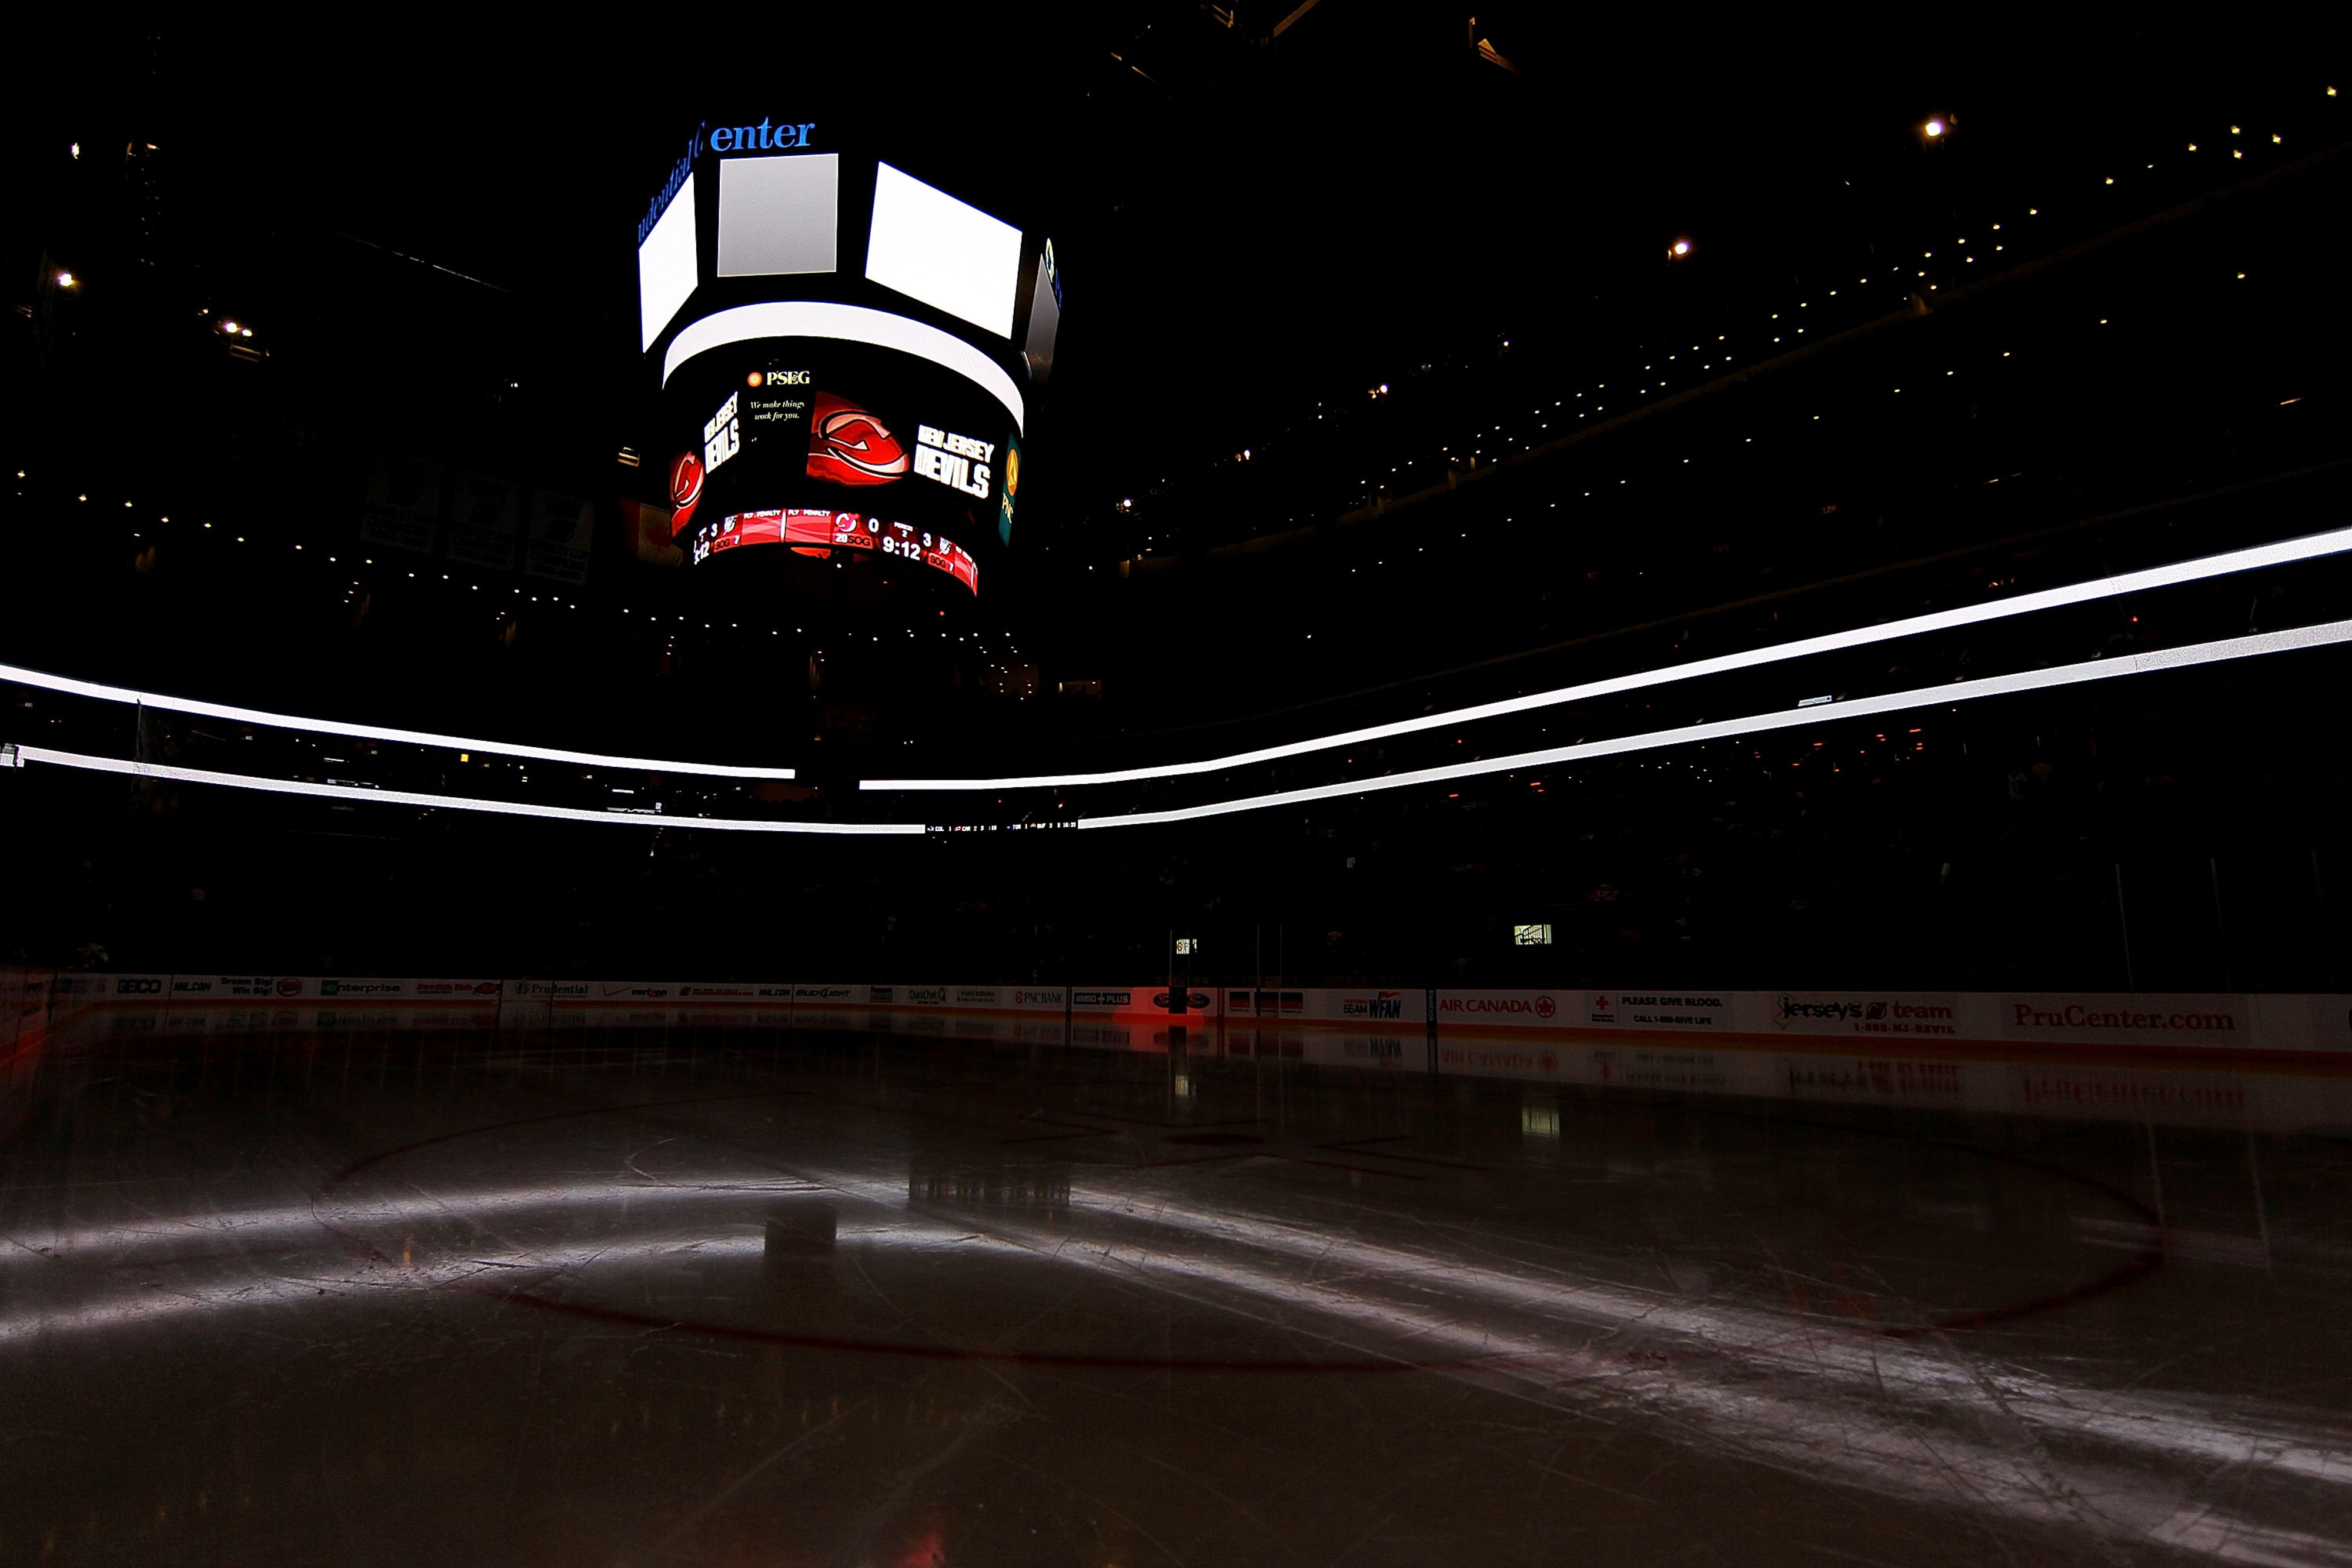 Soon, this rink will be lit up, active, and filled with people like you.  Of course, you'll need some tickets.